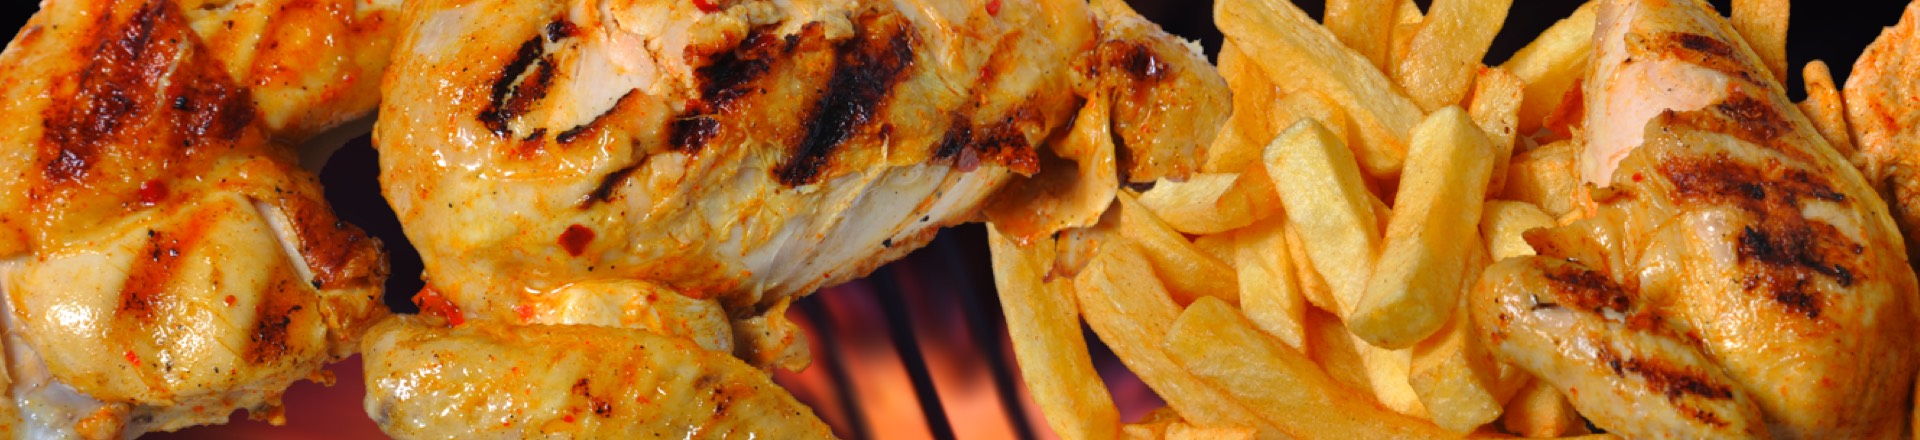 Grilled Chicken Peri-Peri